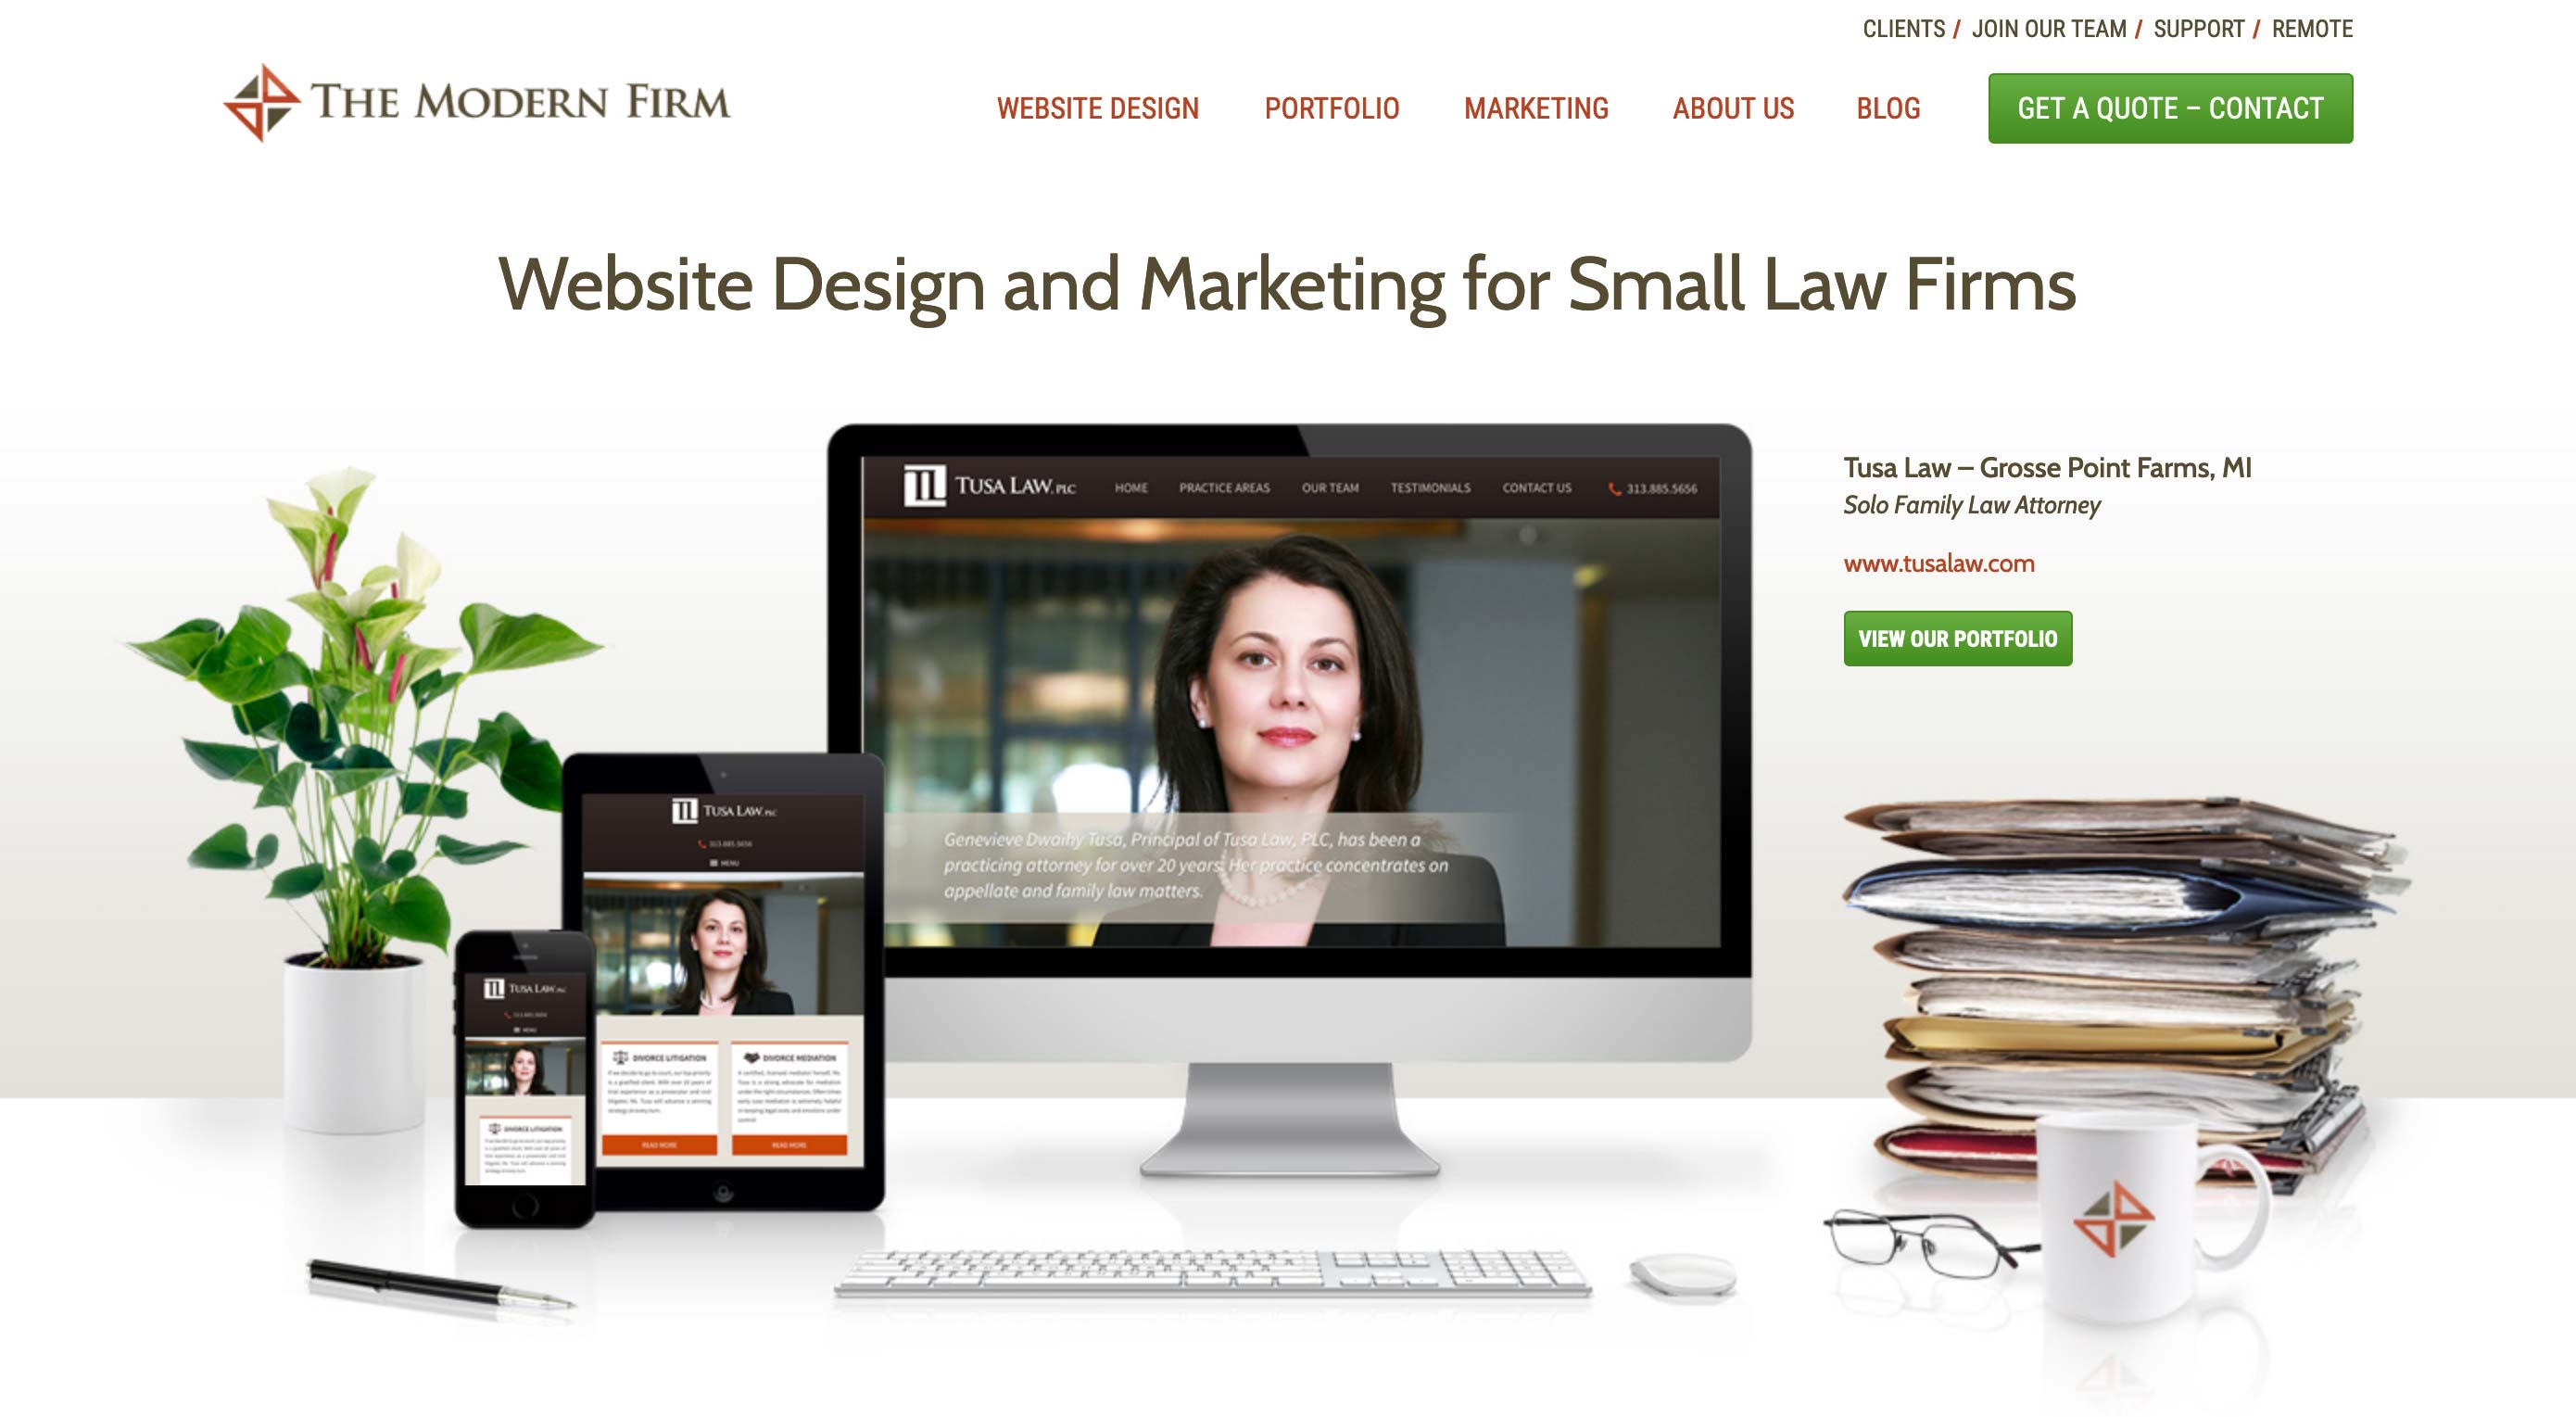 Design Your Website to Sell While You Work